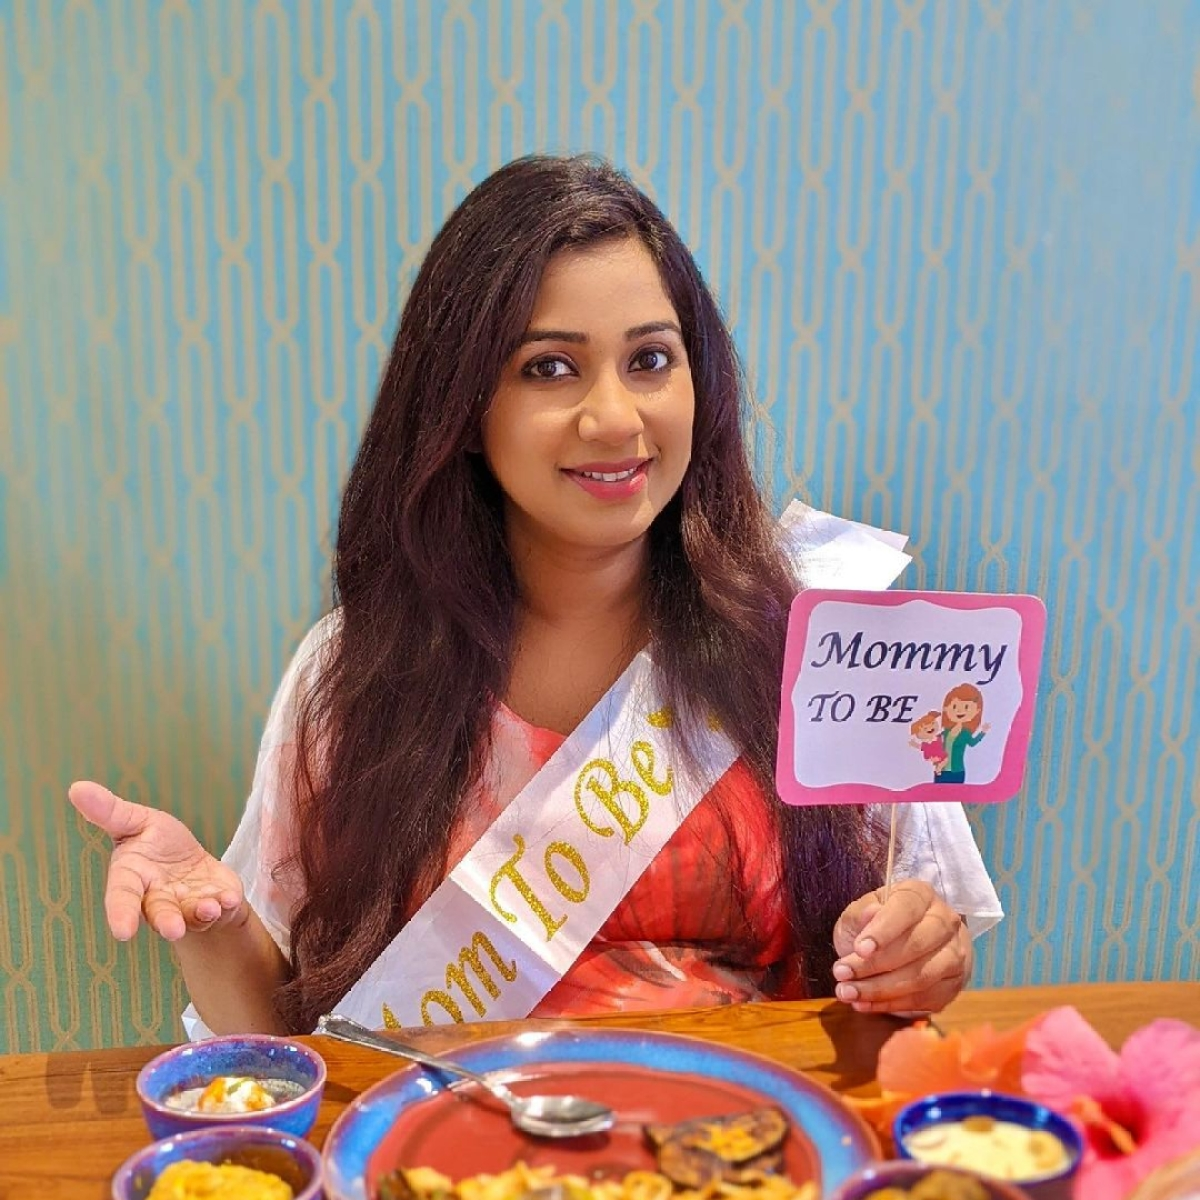 In Pics: Shreya Ghoshal shares glimpses from her 'online surprise baby shower'